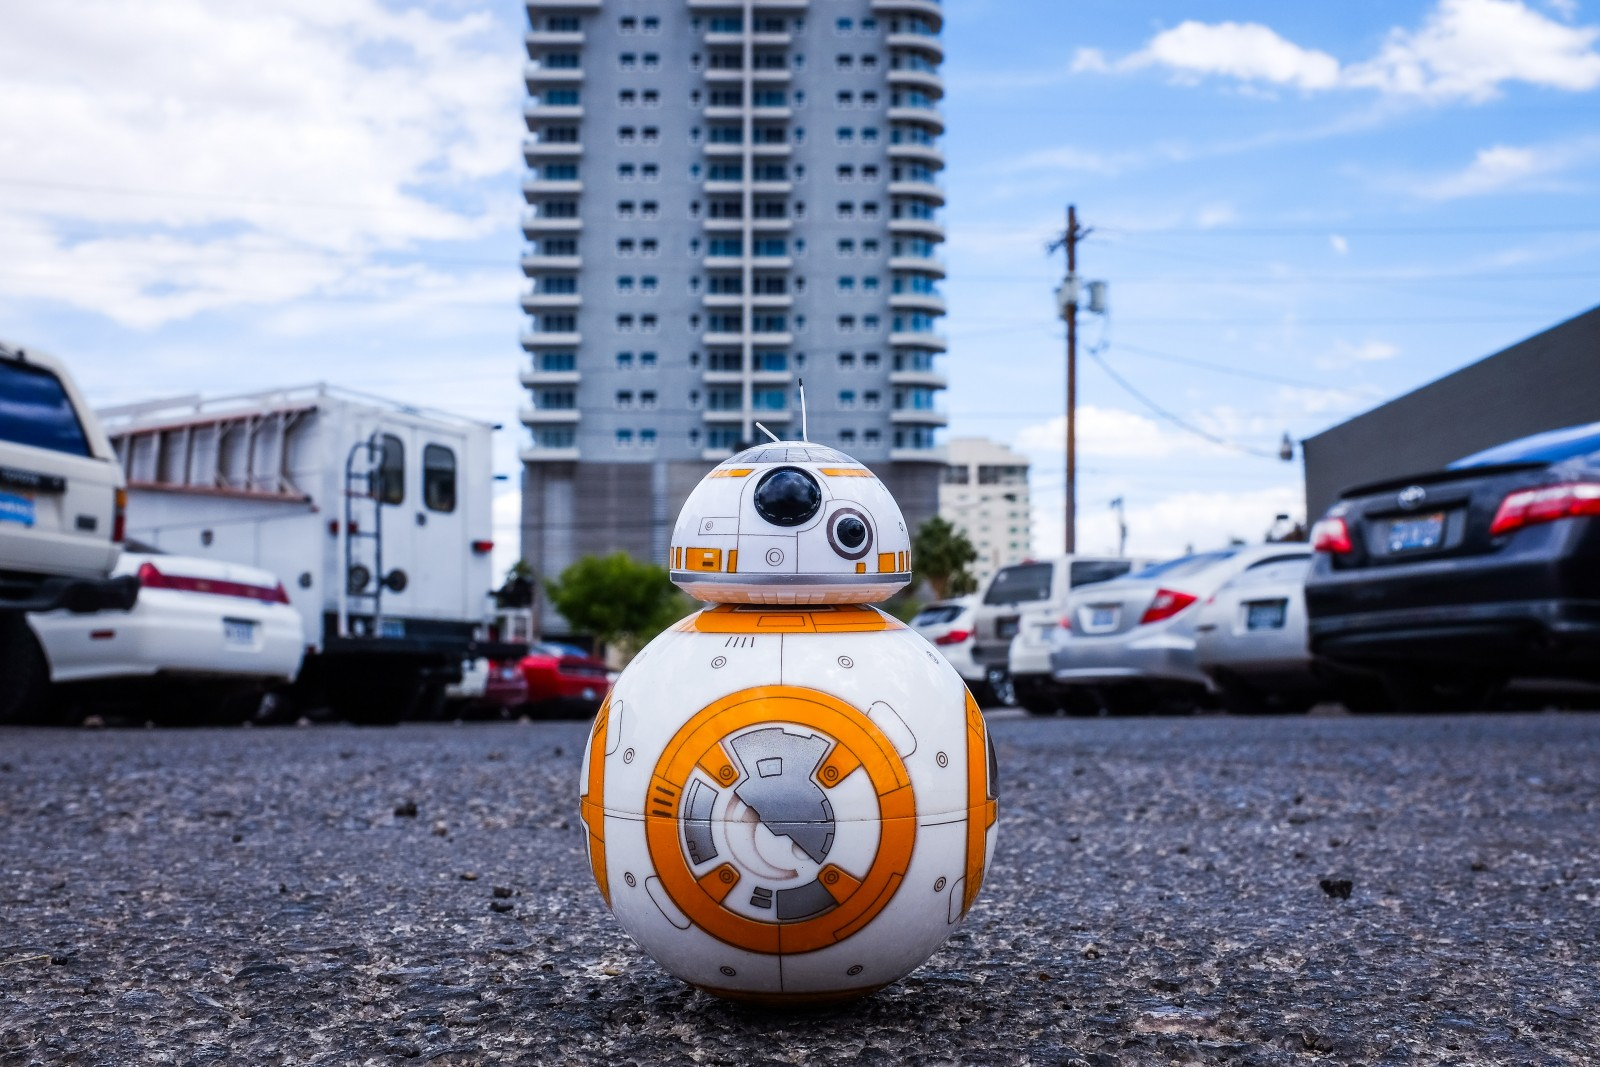 BB8 from Star Wars, example of artificial intelligence